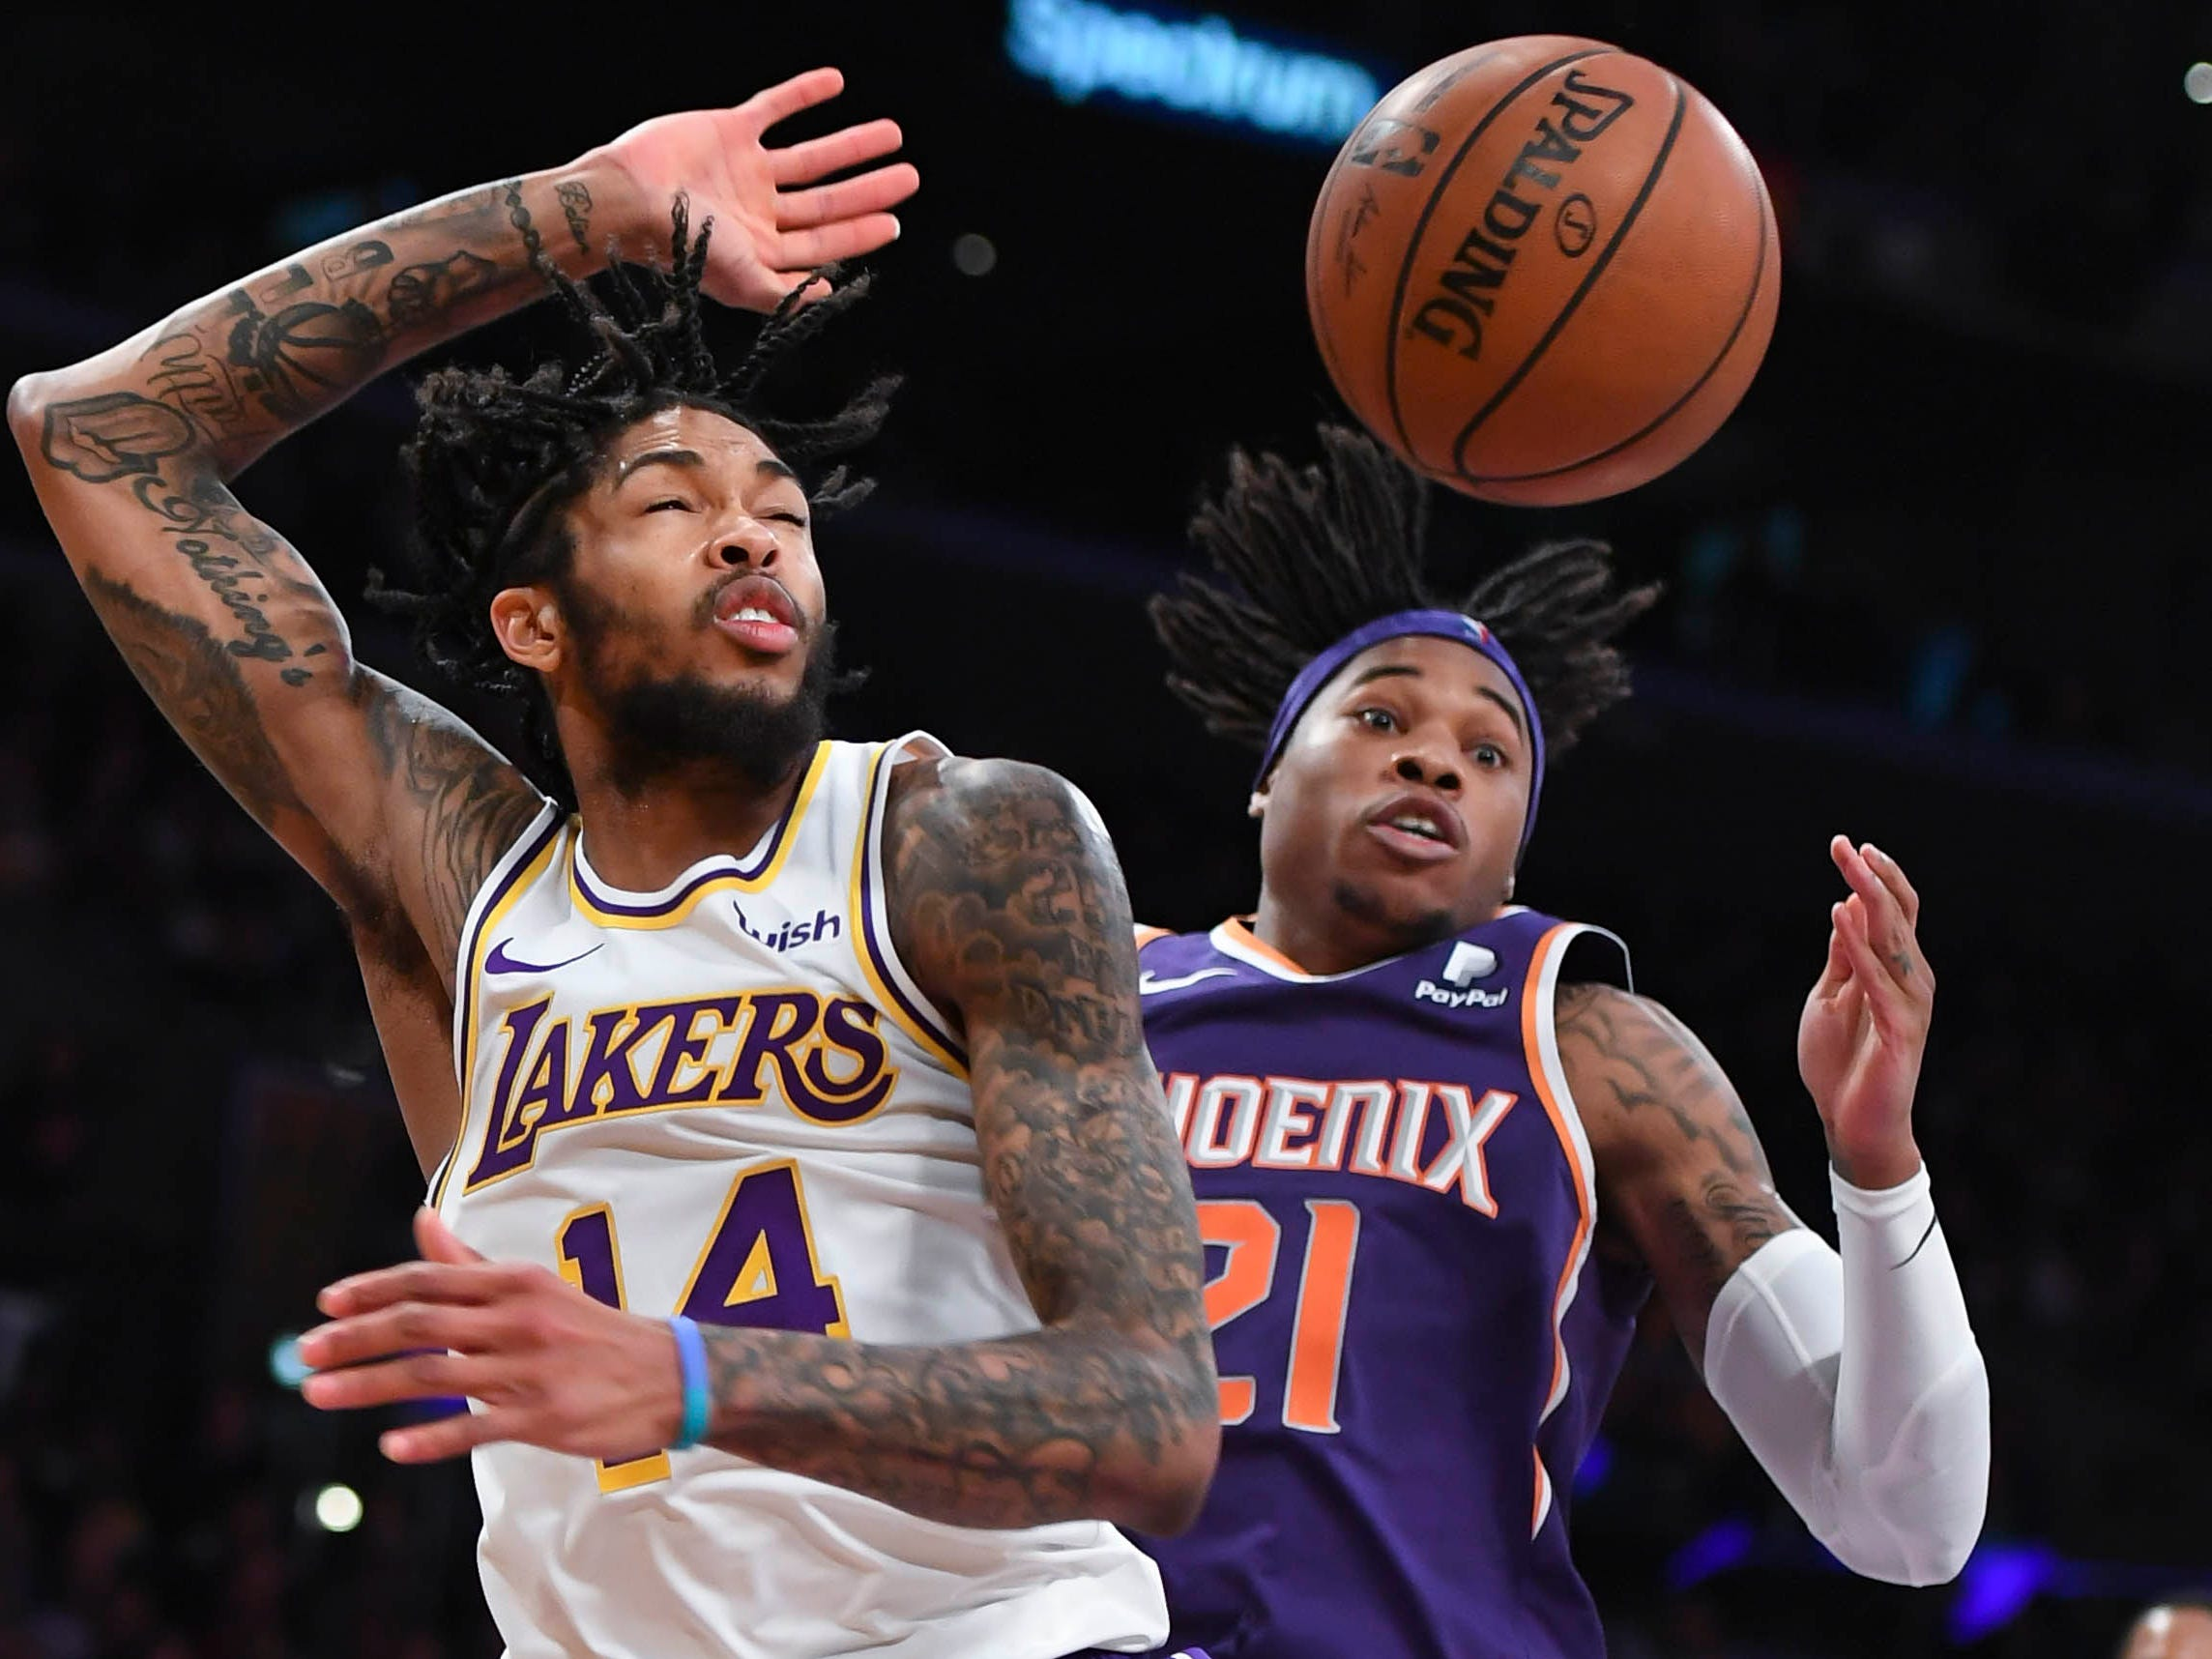 Dec. 2: Suns defender Richaun Holmes (21) fouls Lakers forward Brandon Ingram (14) on a second-half drive to the basket in Los Angeles.